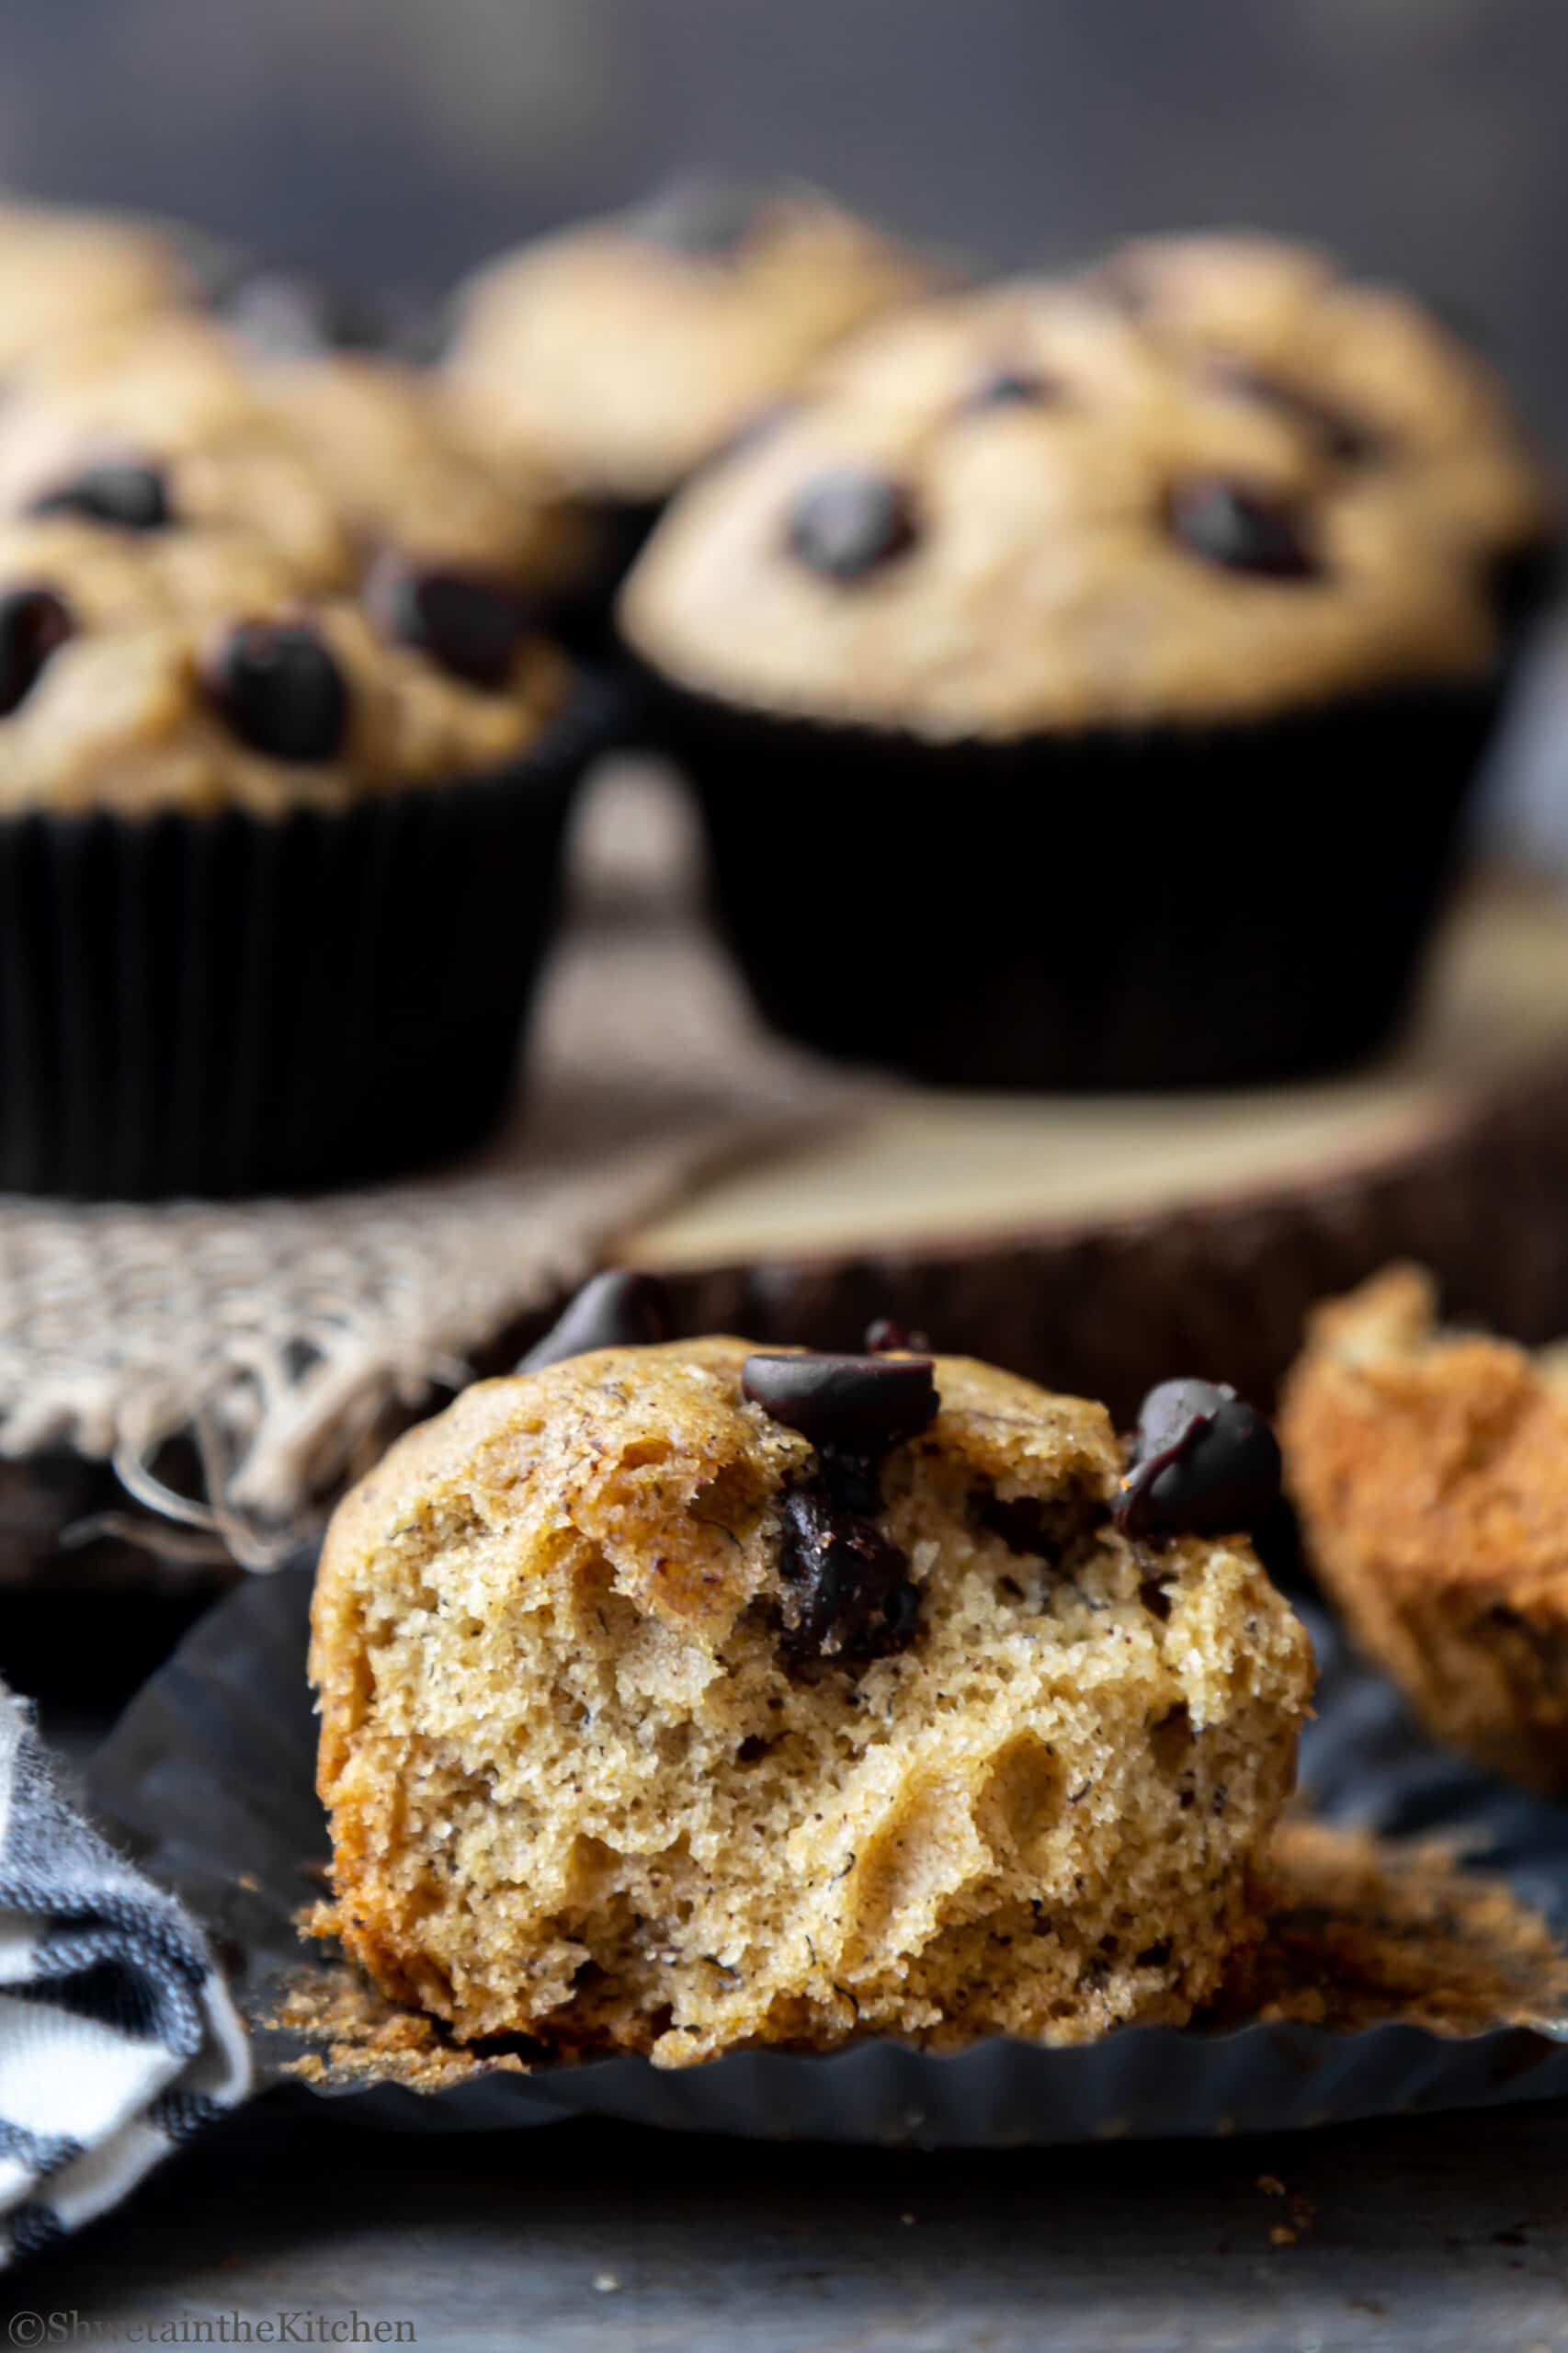 Eggless Banana Chocolate Chip Muffins